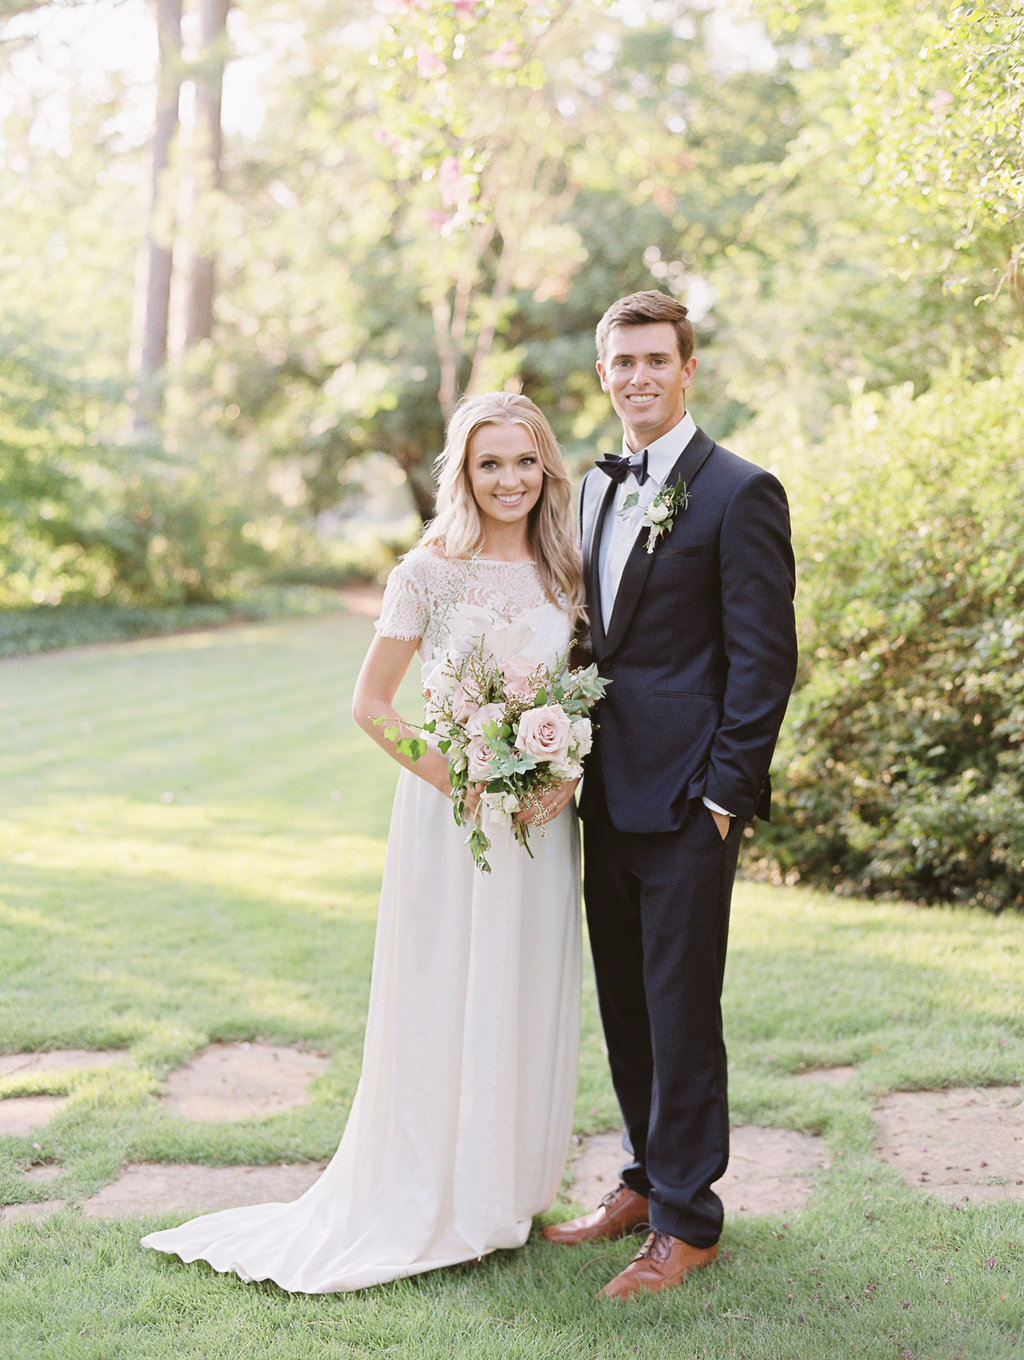 athens-founders-memorial-garden-wedding-photography-hannah-forsberg-atlanta-wedding-photographer-28.jpg